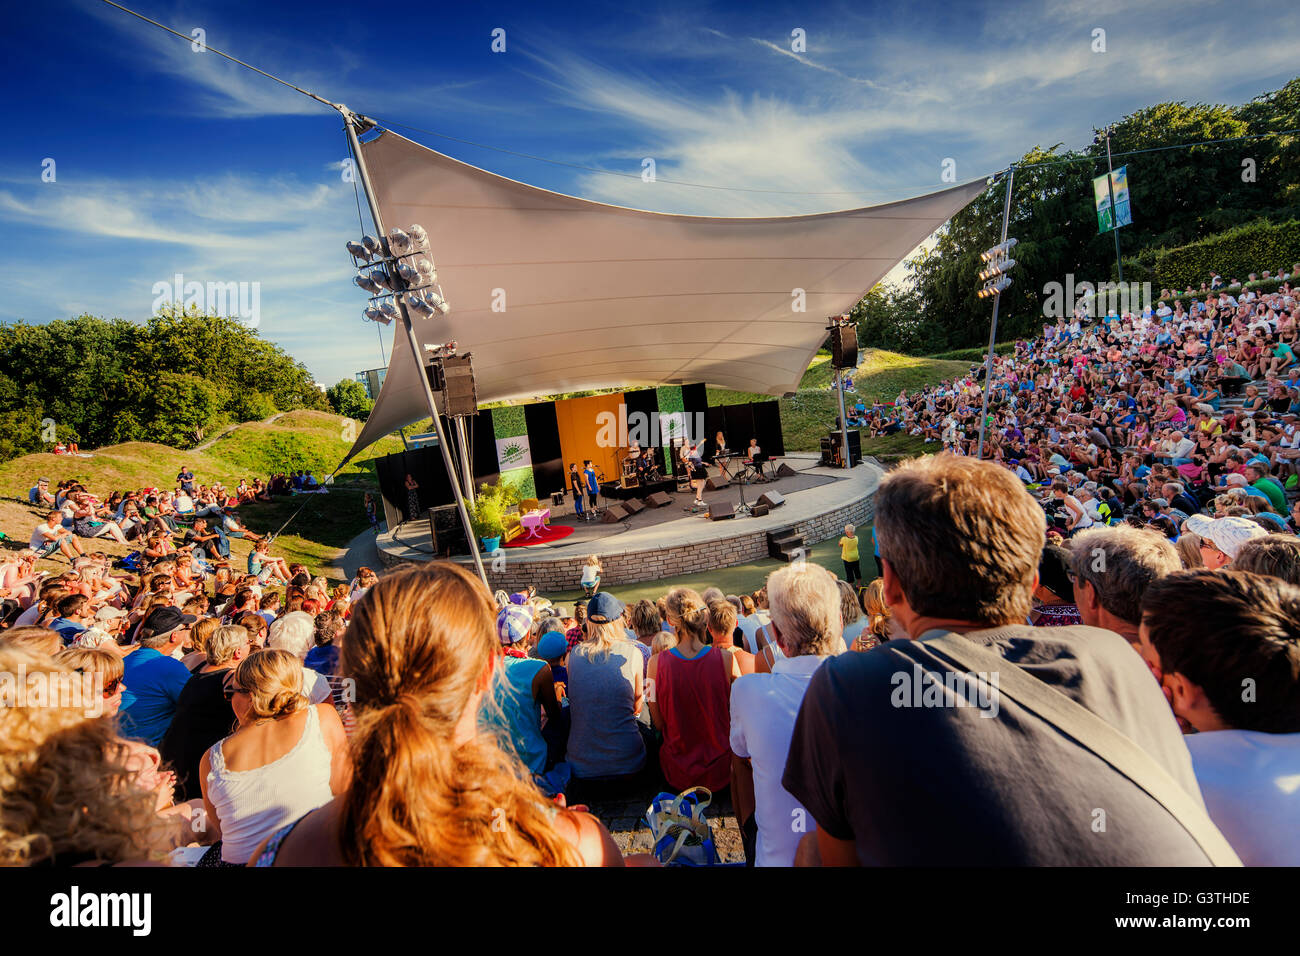 Sweden, Skane, Malmo, Crowd watching performance taking place on outdoor stage - Stock Image